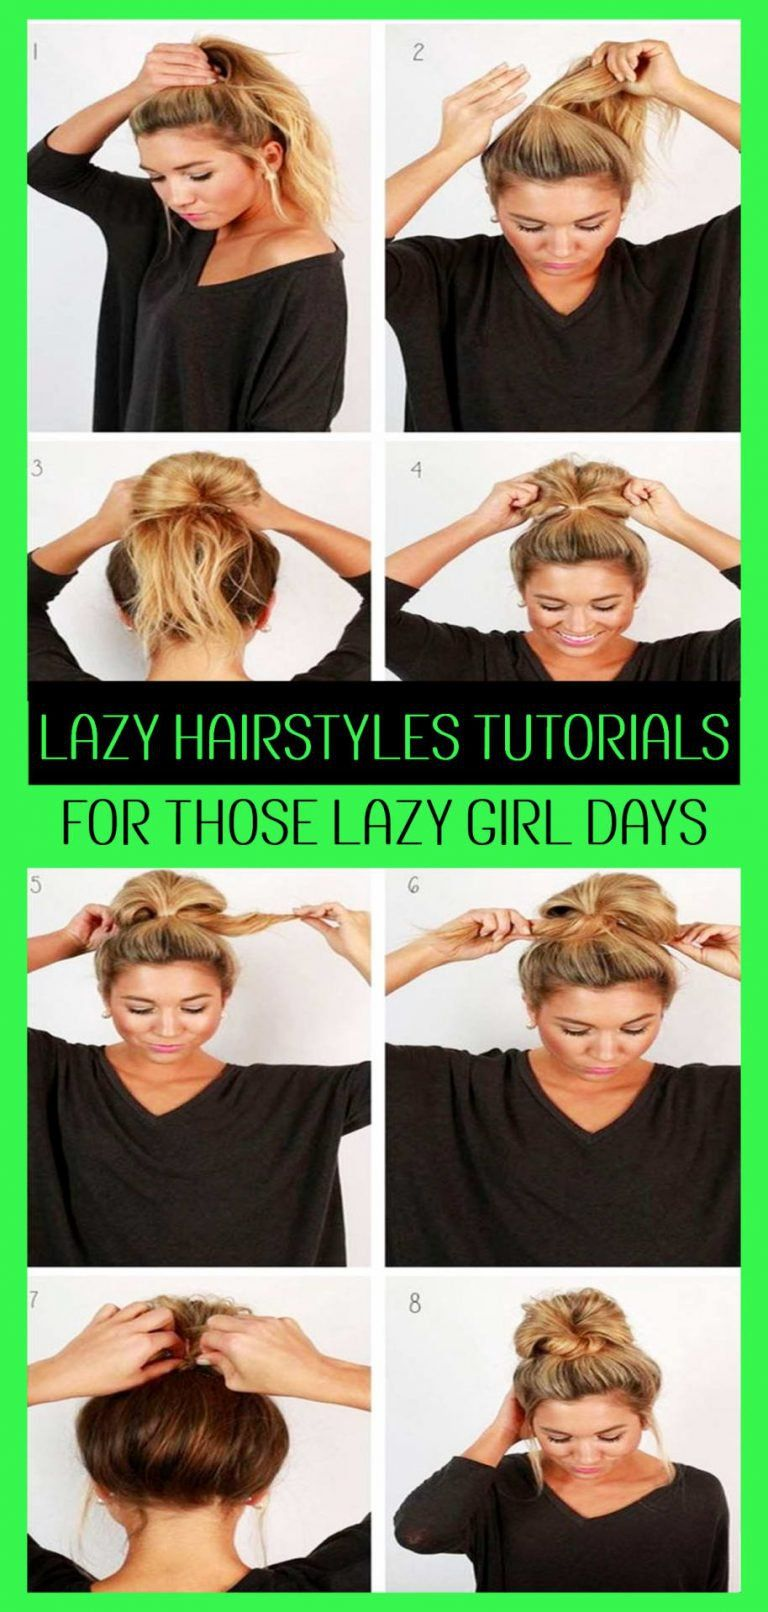 10 Easy Lazy Girl Hairstyle Ideas Step By Step Video Tutorials For Lazy Day Running Late Quick Hairstyles Clever Diy Ideas In 2020 Lazy Hairstyles Easy Everyday Hairstyles Short Hair Styles Easy